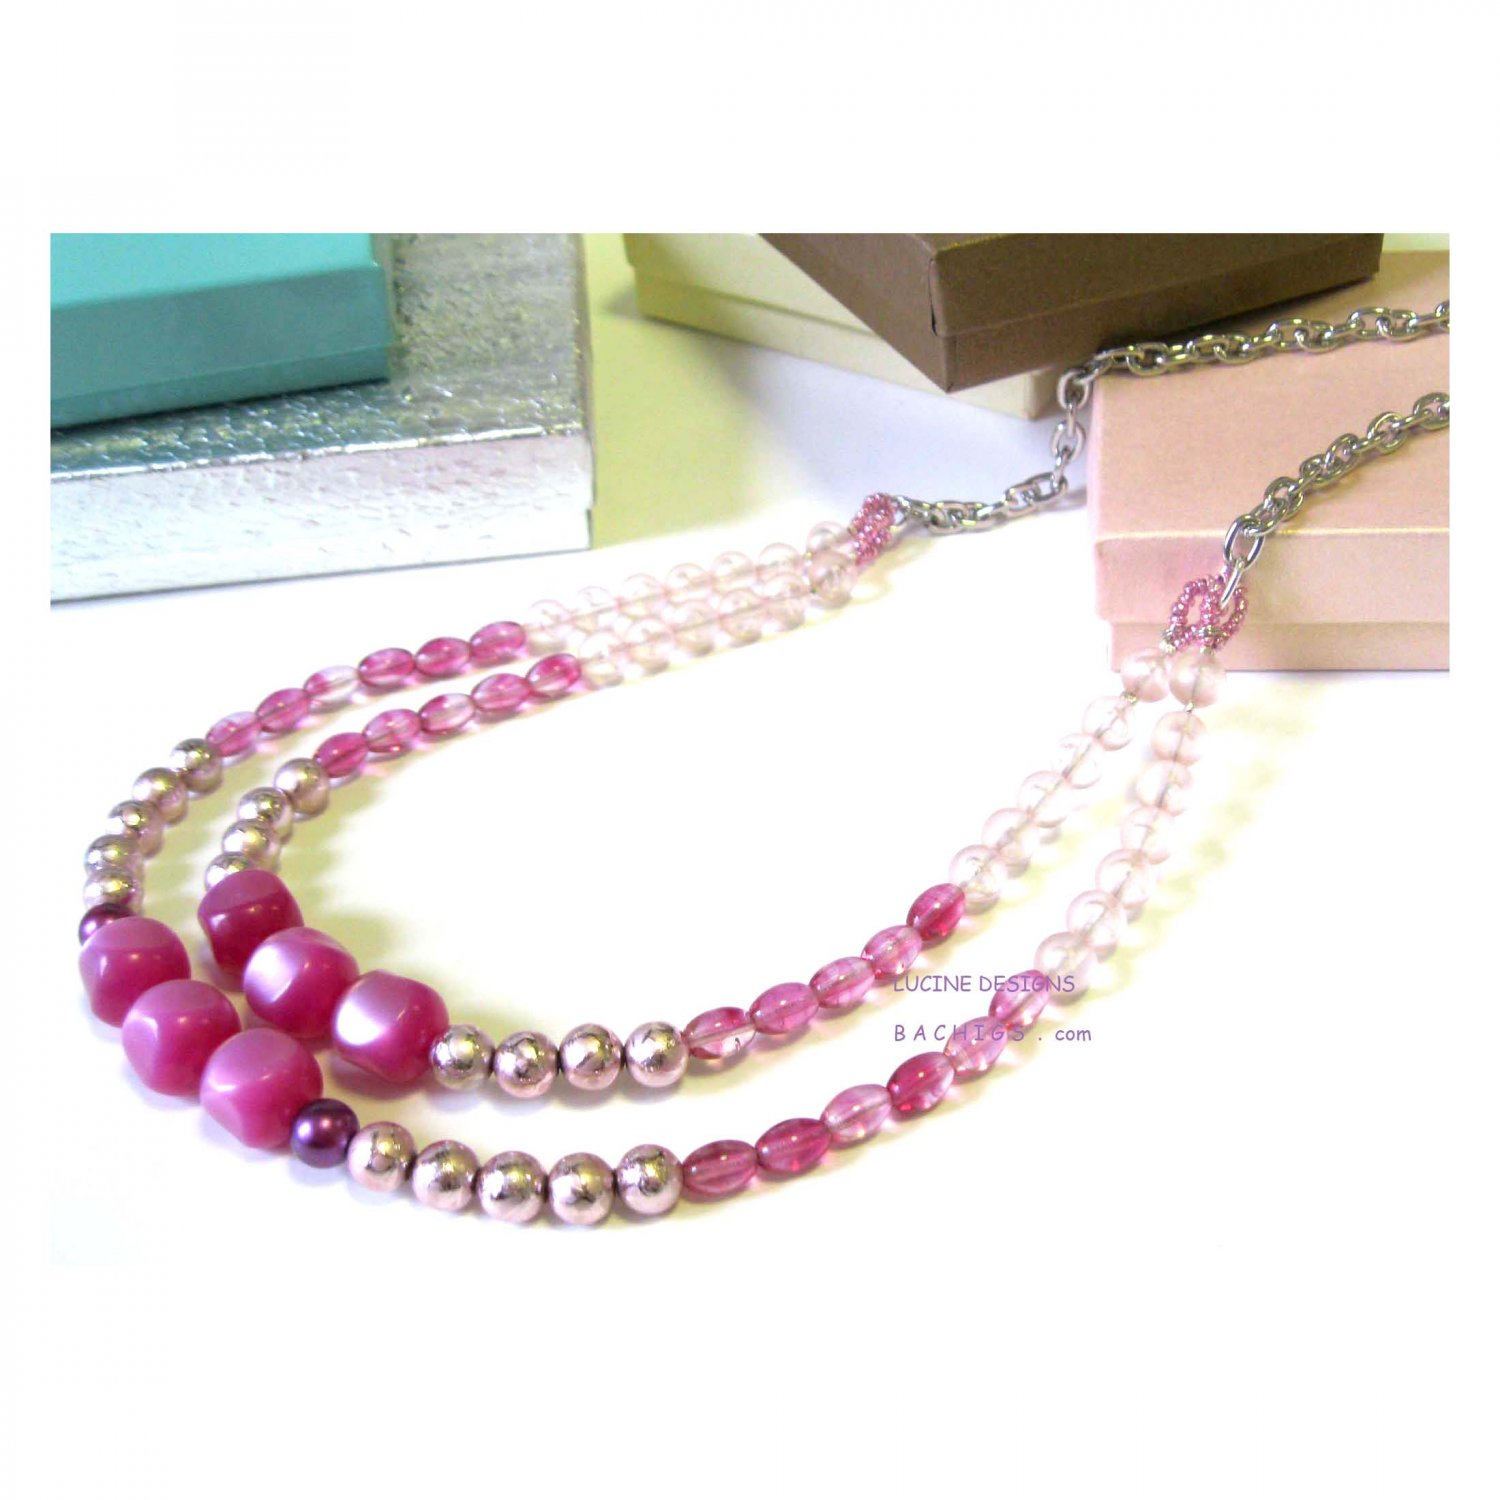 Pink ombre ooak chic fashion necklace, Jewelry, bridal fashion romantic ombre necklace, Chic